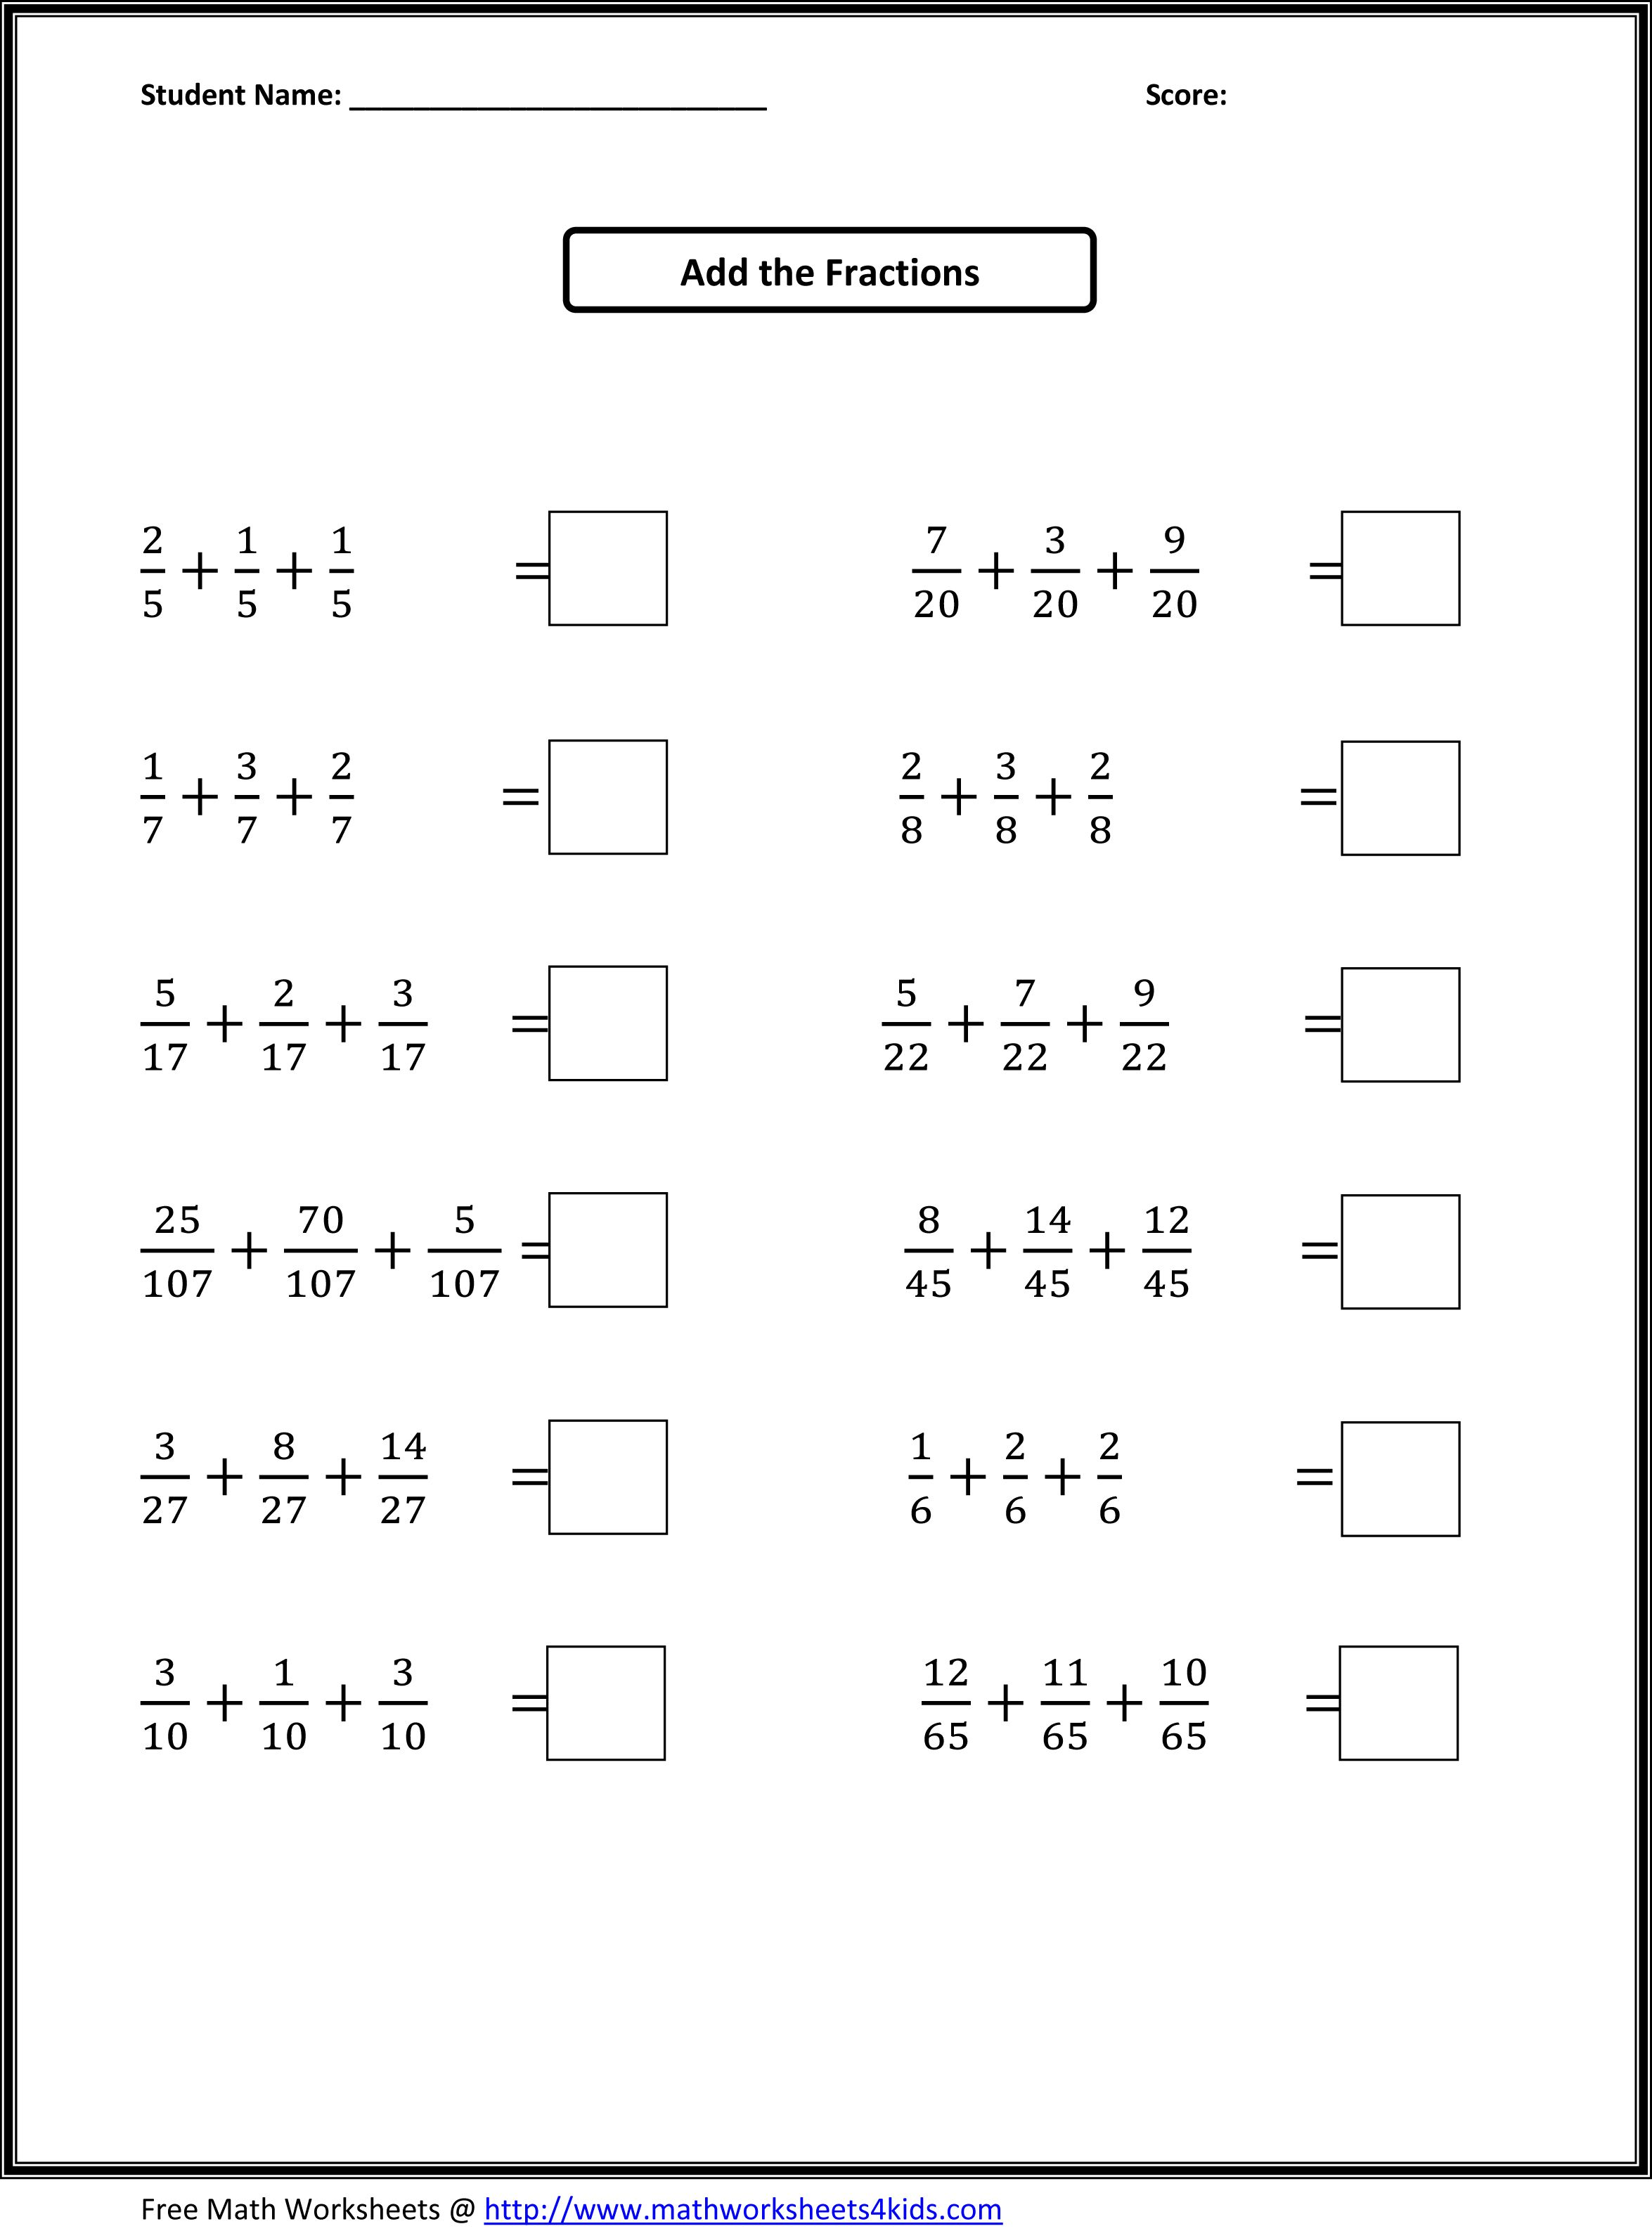 Printables Math Worksheets For Fourth Grade 1000 images about math worksheets on pinterest 4th grade geometry and fourth math